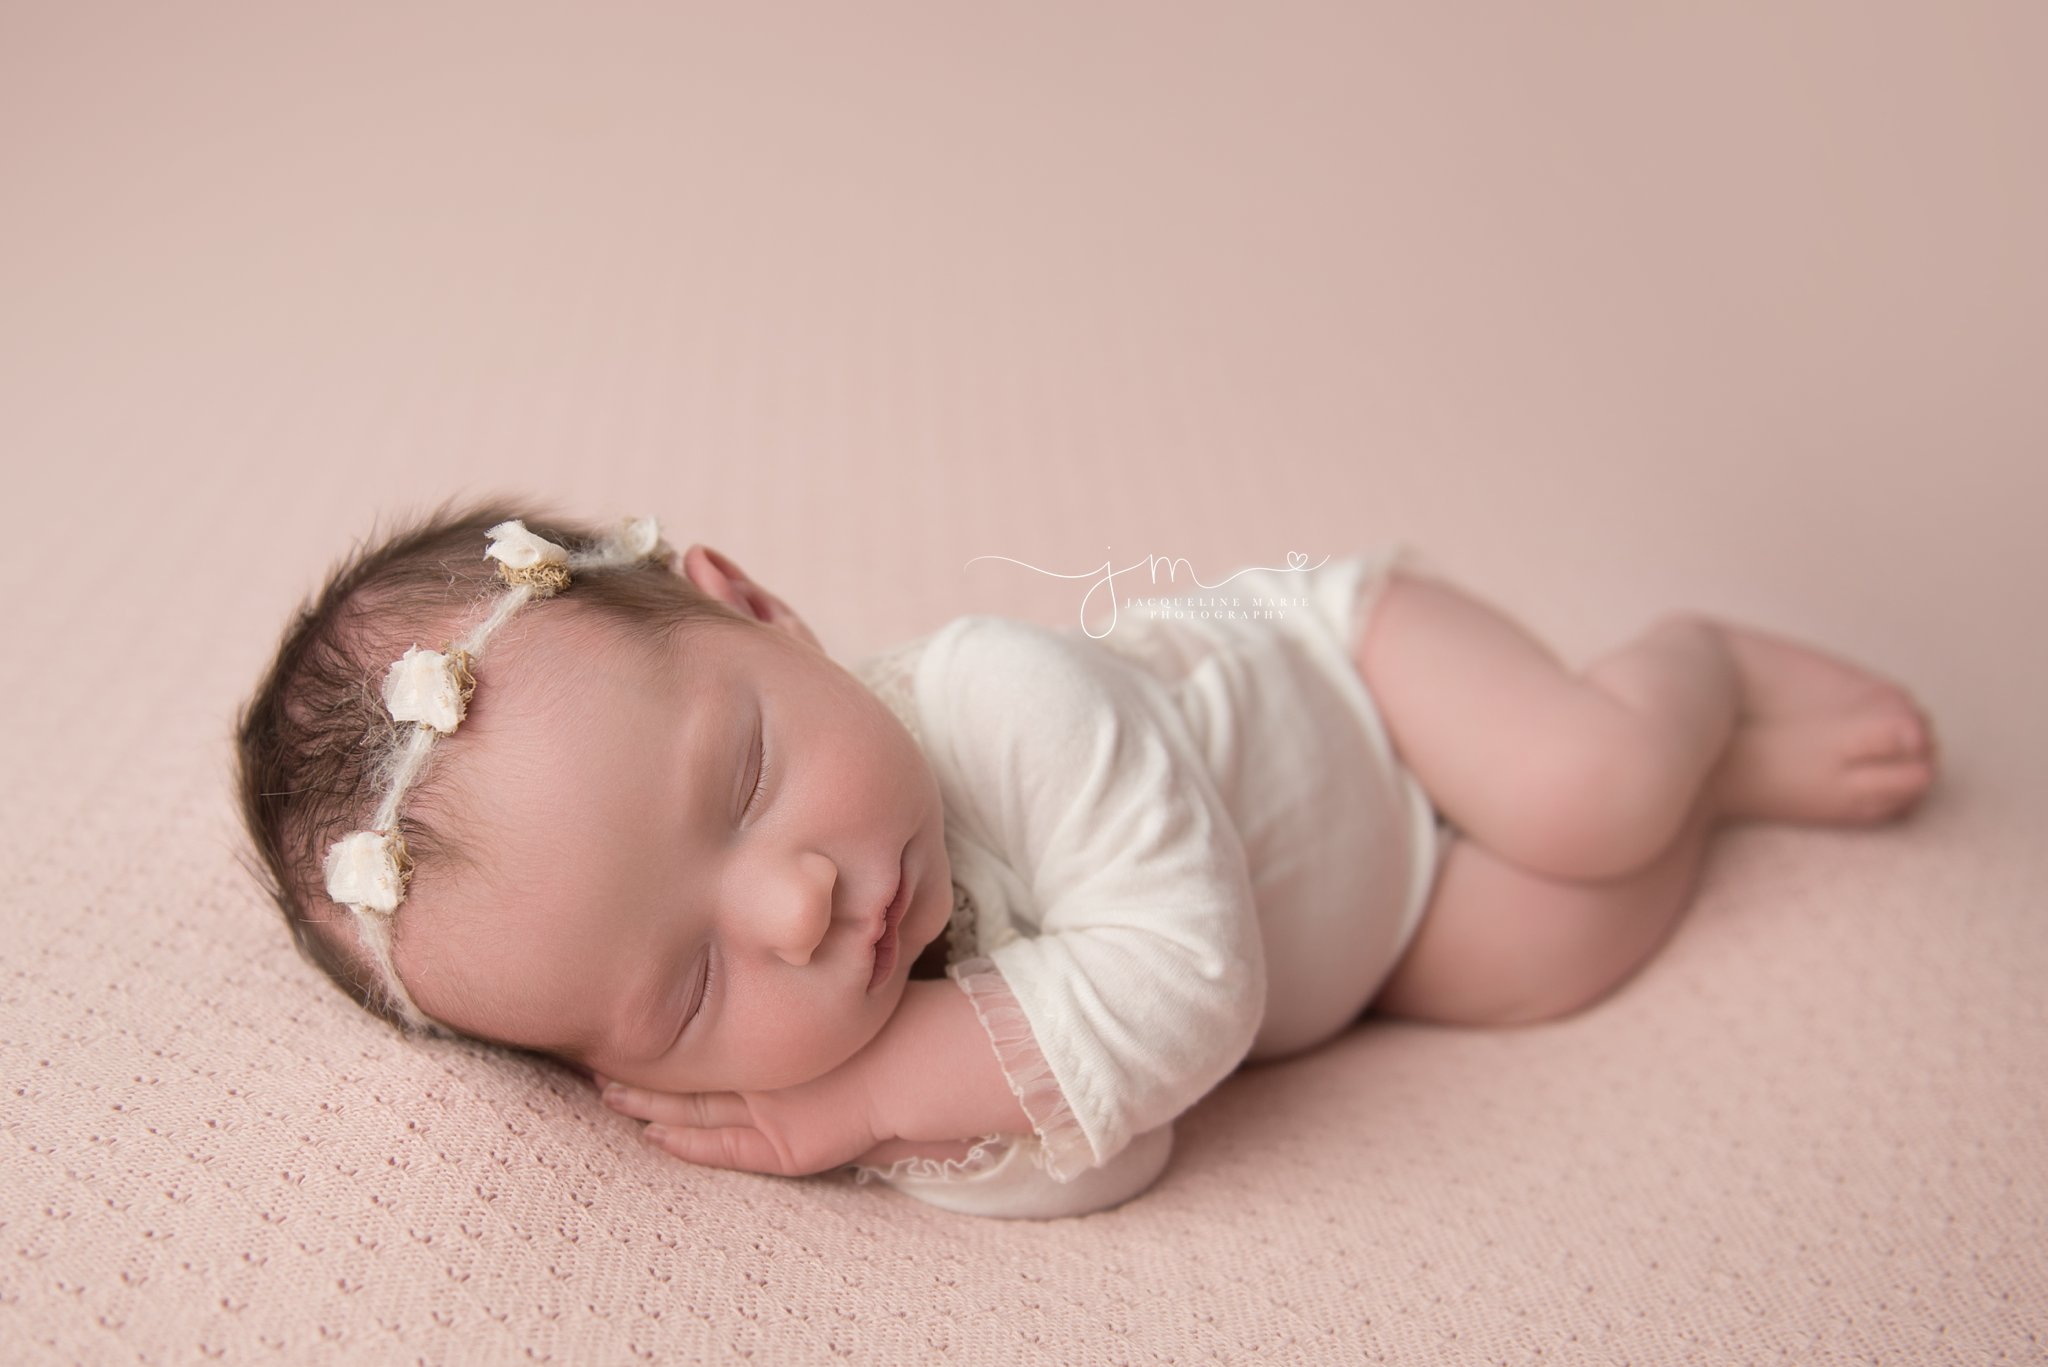 1 week old newborn baby girl wears cream headband and romper while sleeping for newborn photography session